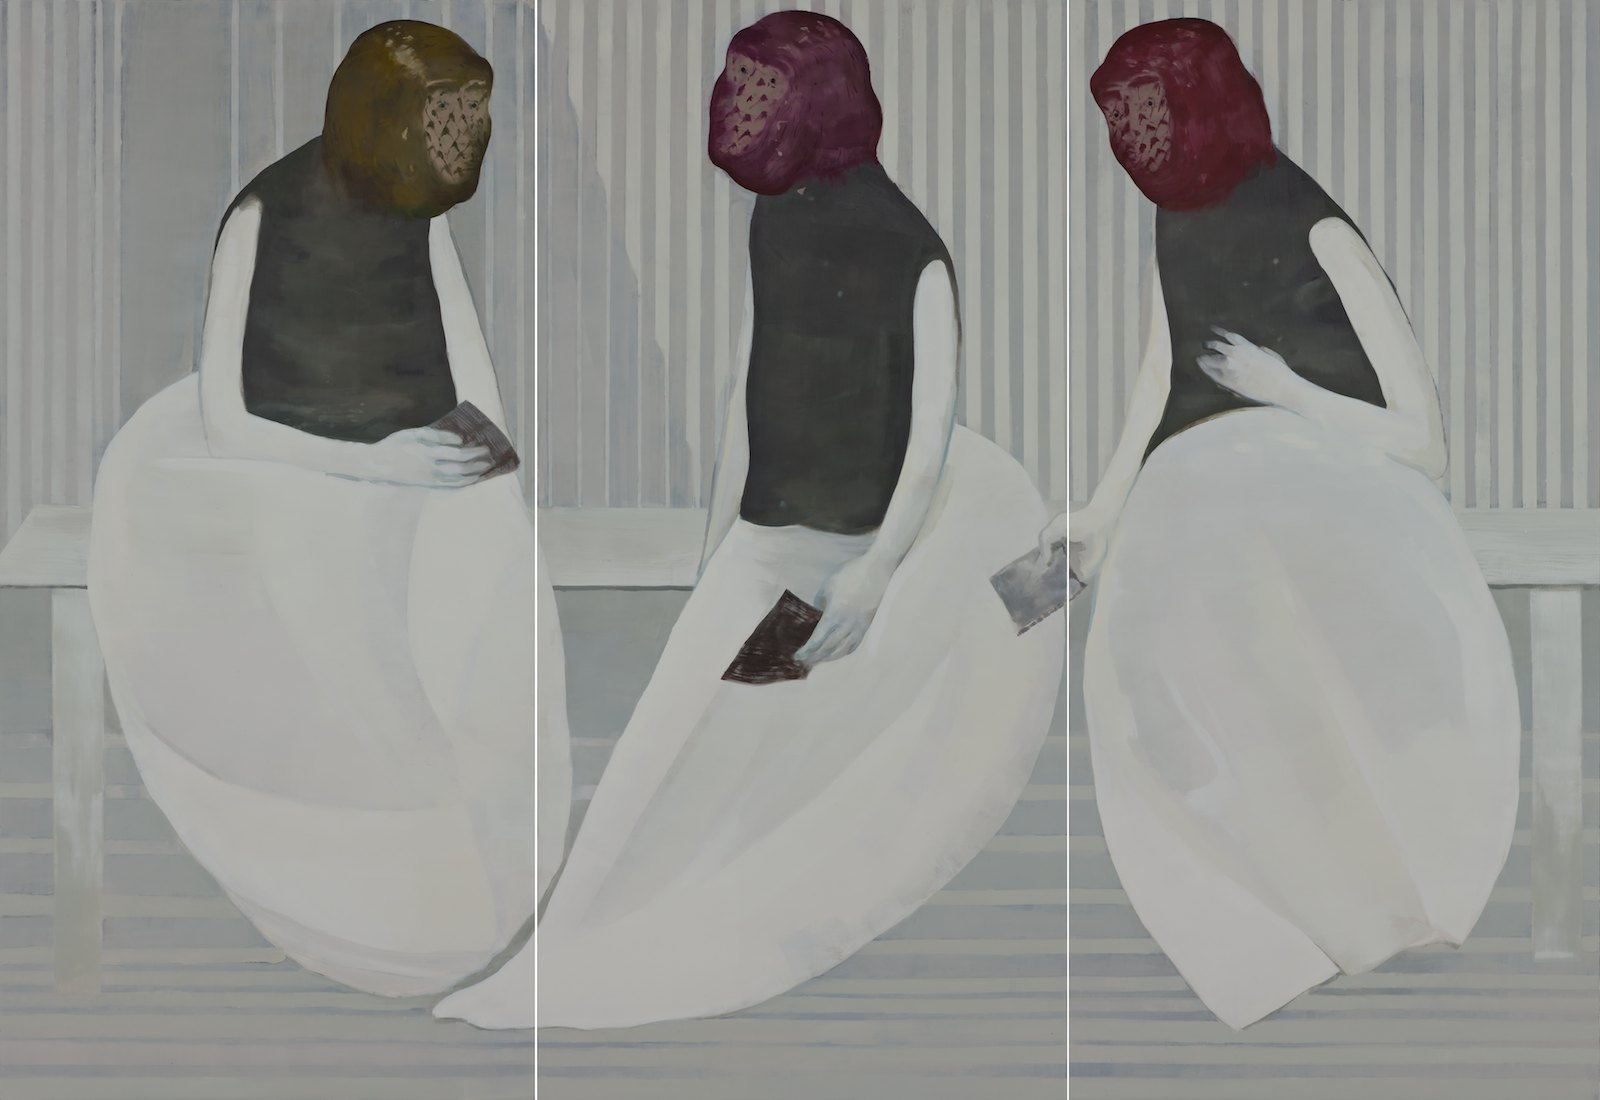 The Face Cheats Also, 2012, oil on canvas over panel, 198,5 x 289,5 cm (3 parts)